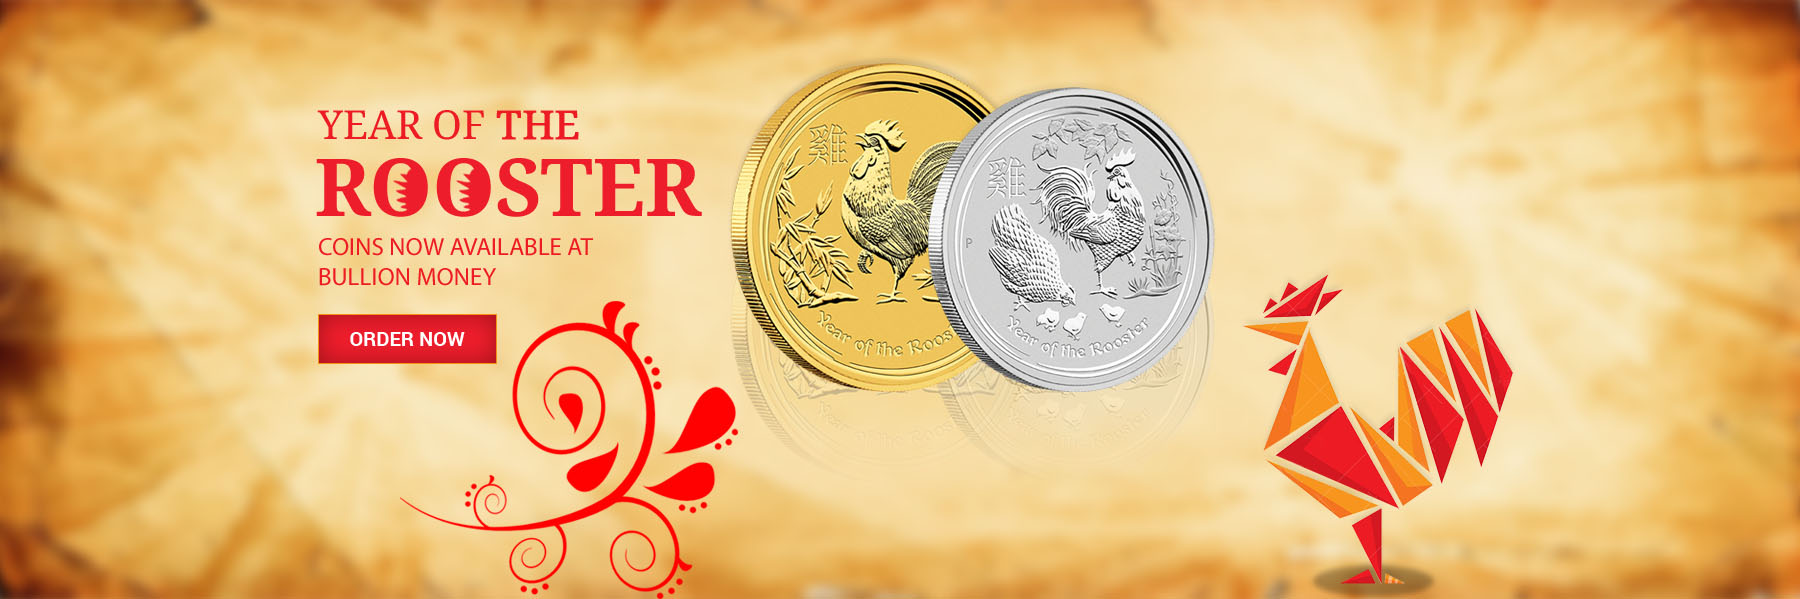 Year of the rooster 2017 Lunar Coins by Perth Mint